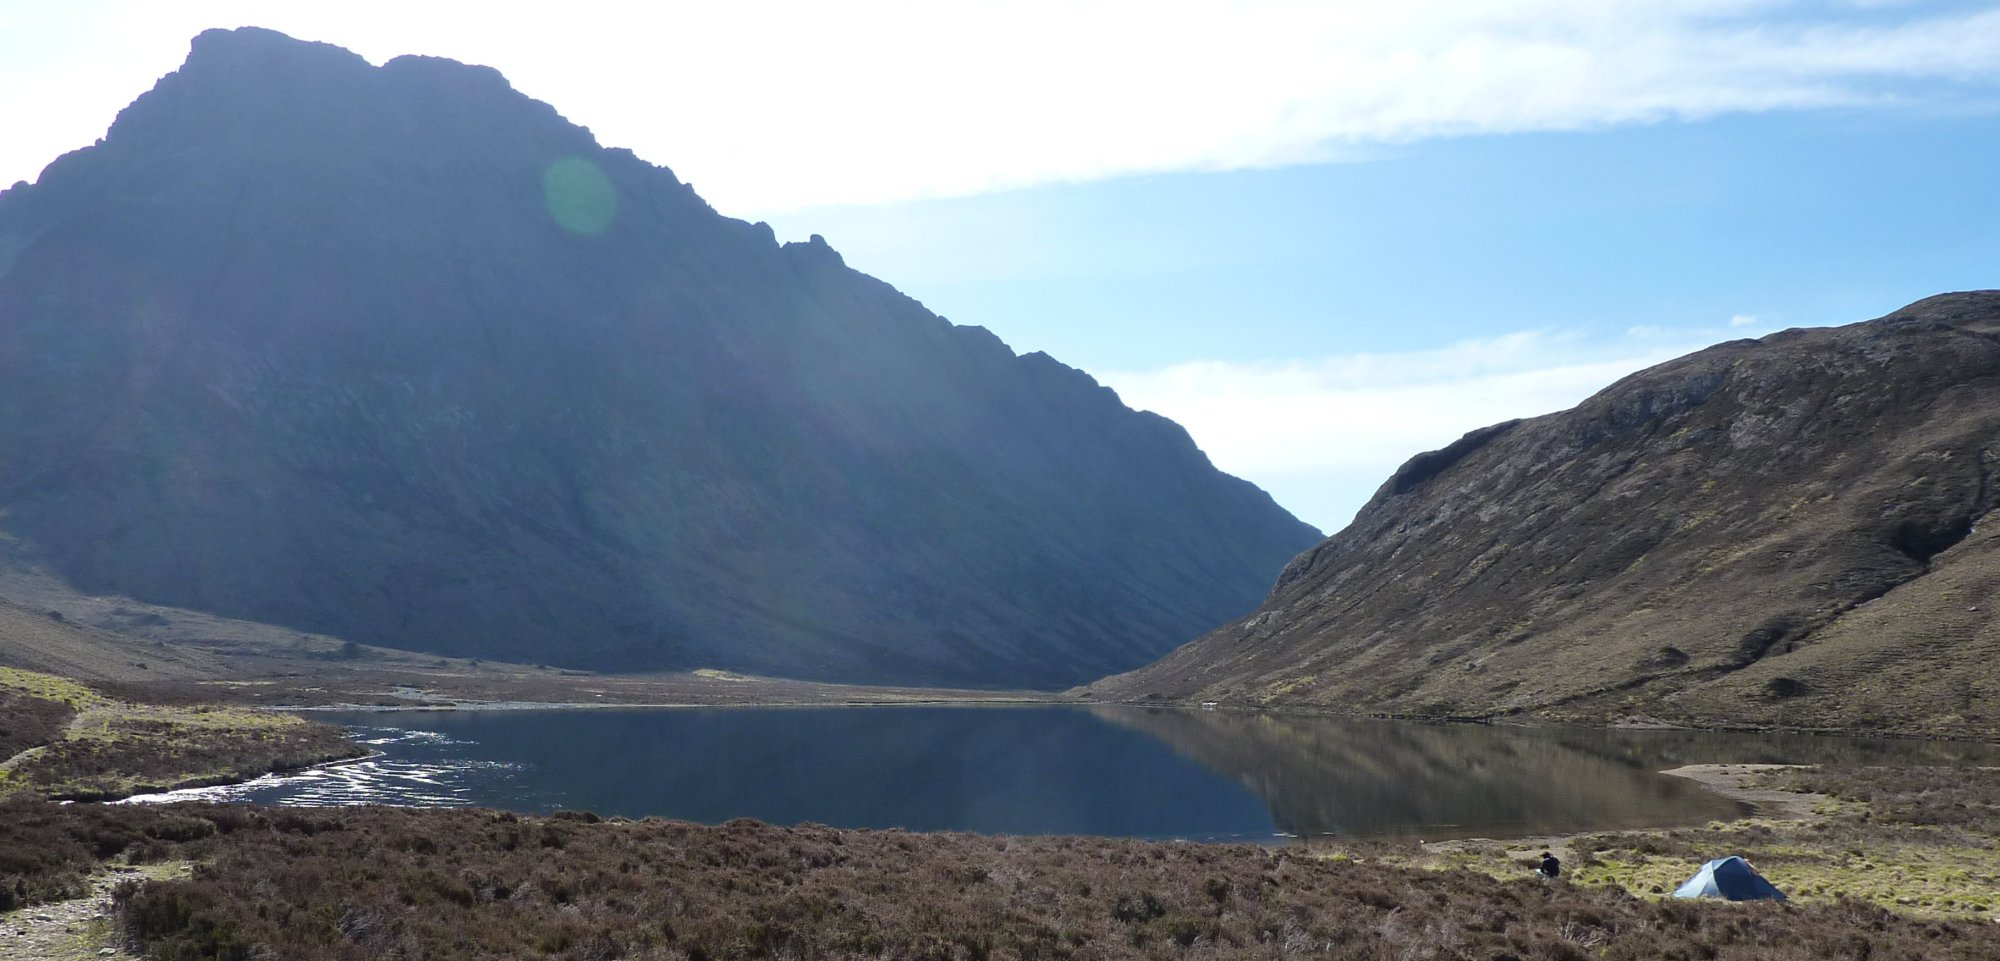 Loch an Athain with a pair of wild campers in the most amazing location